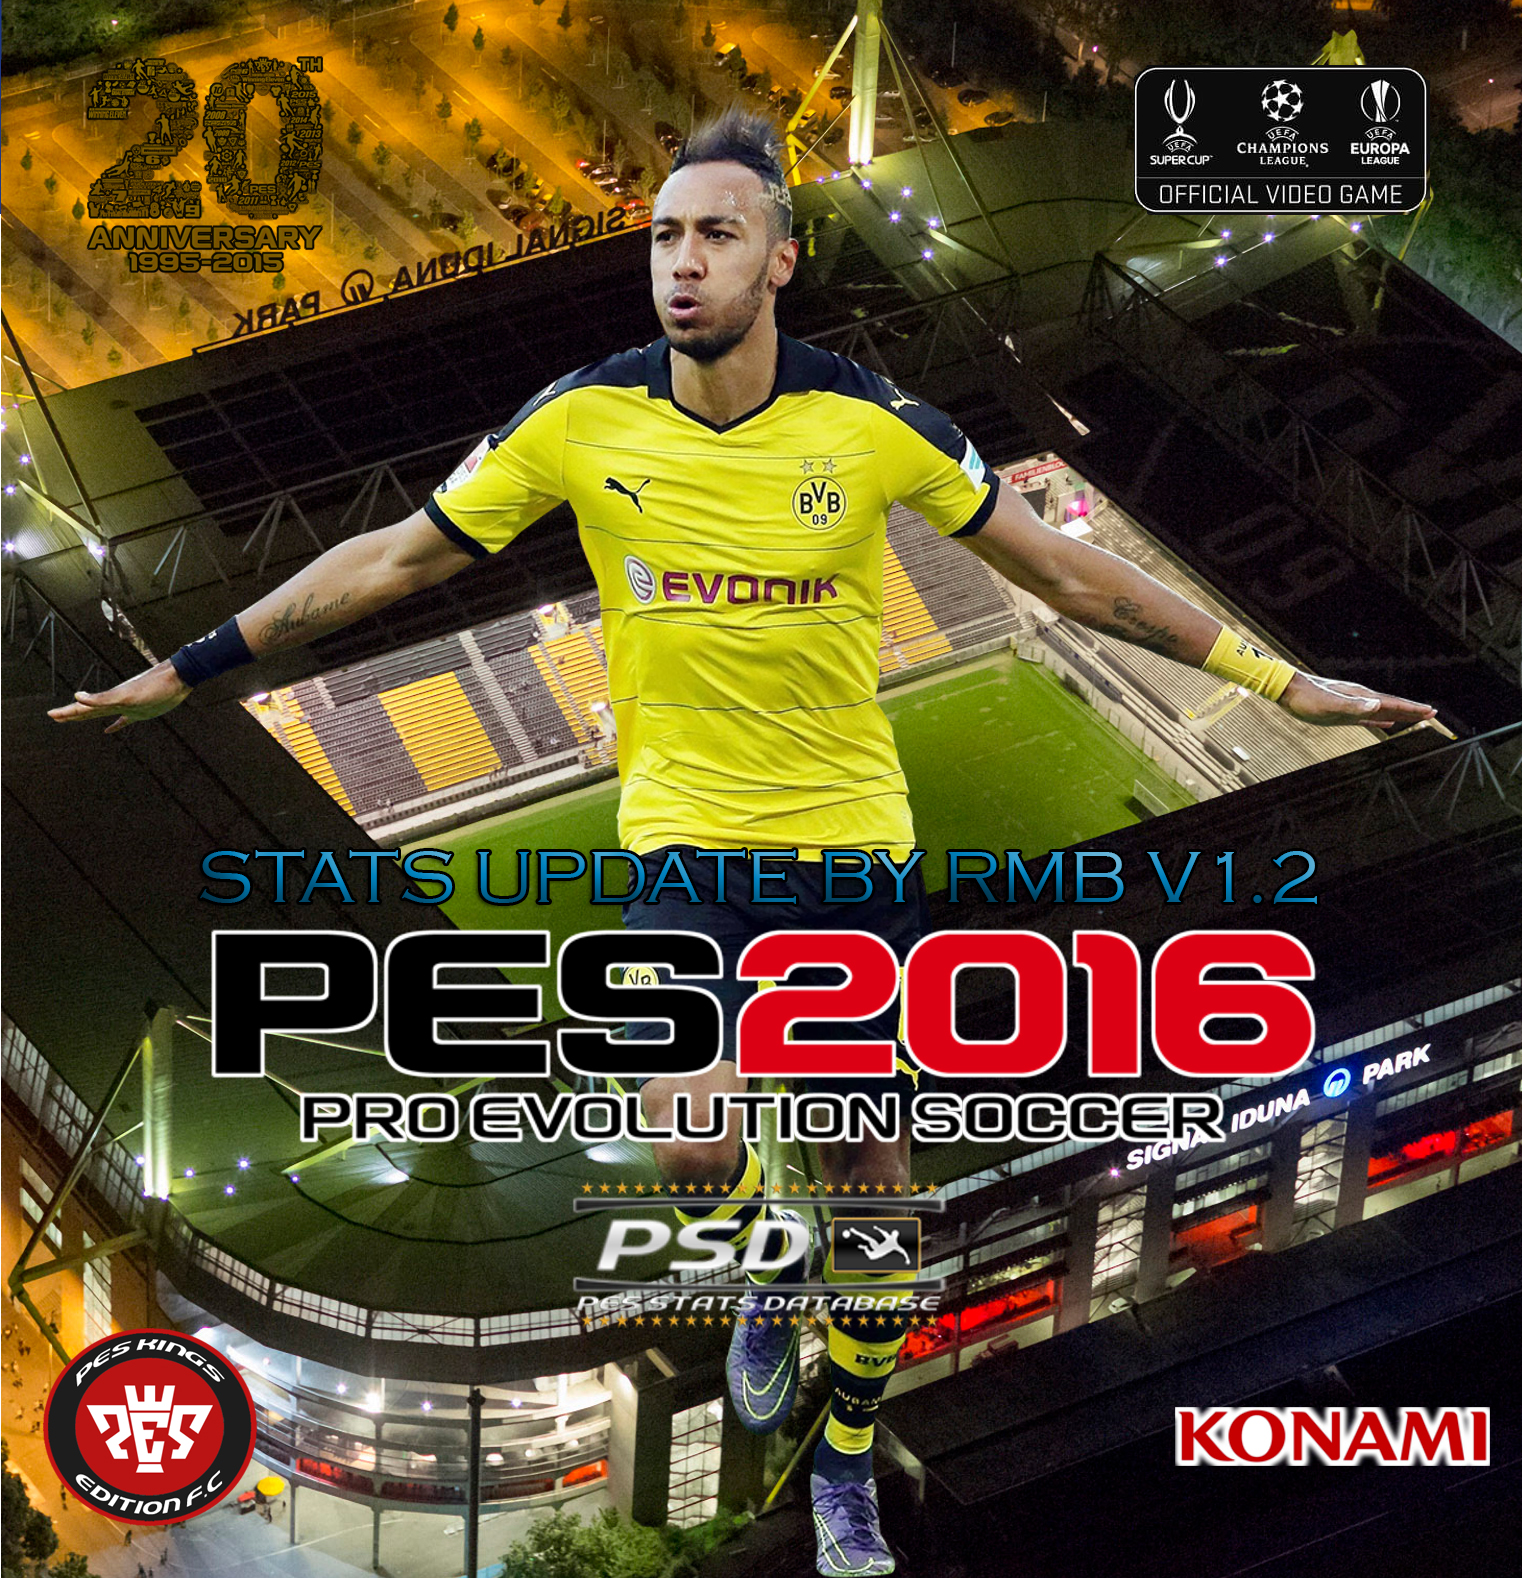 Pes Stats Database: PES-MODIF: PES 2016 PSD Stats For PTE 4.1 (V1.2) By RMB